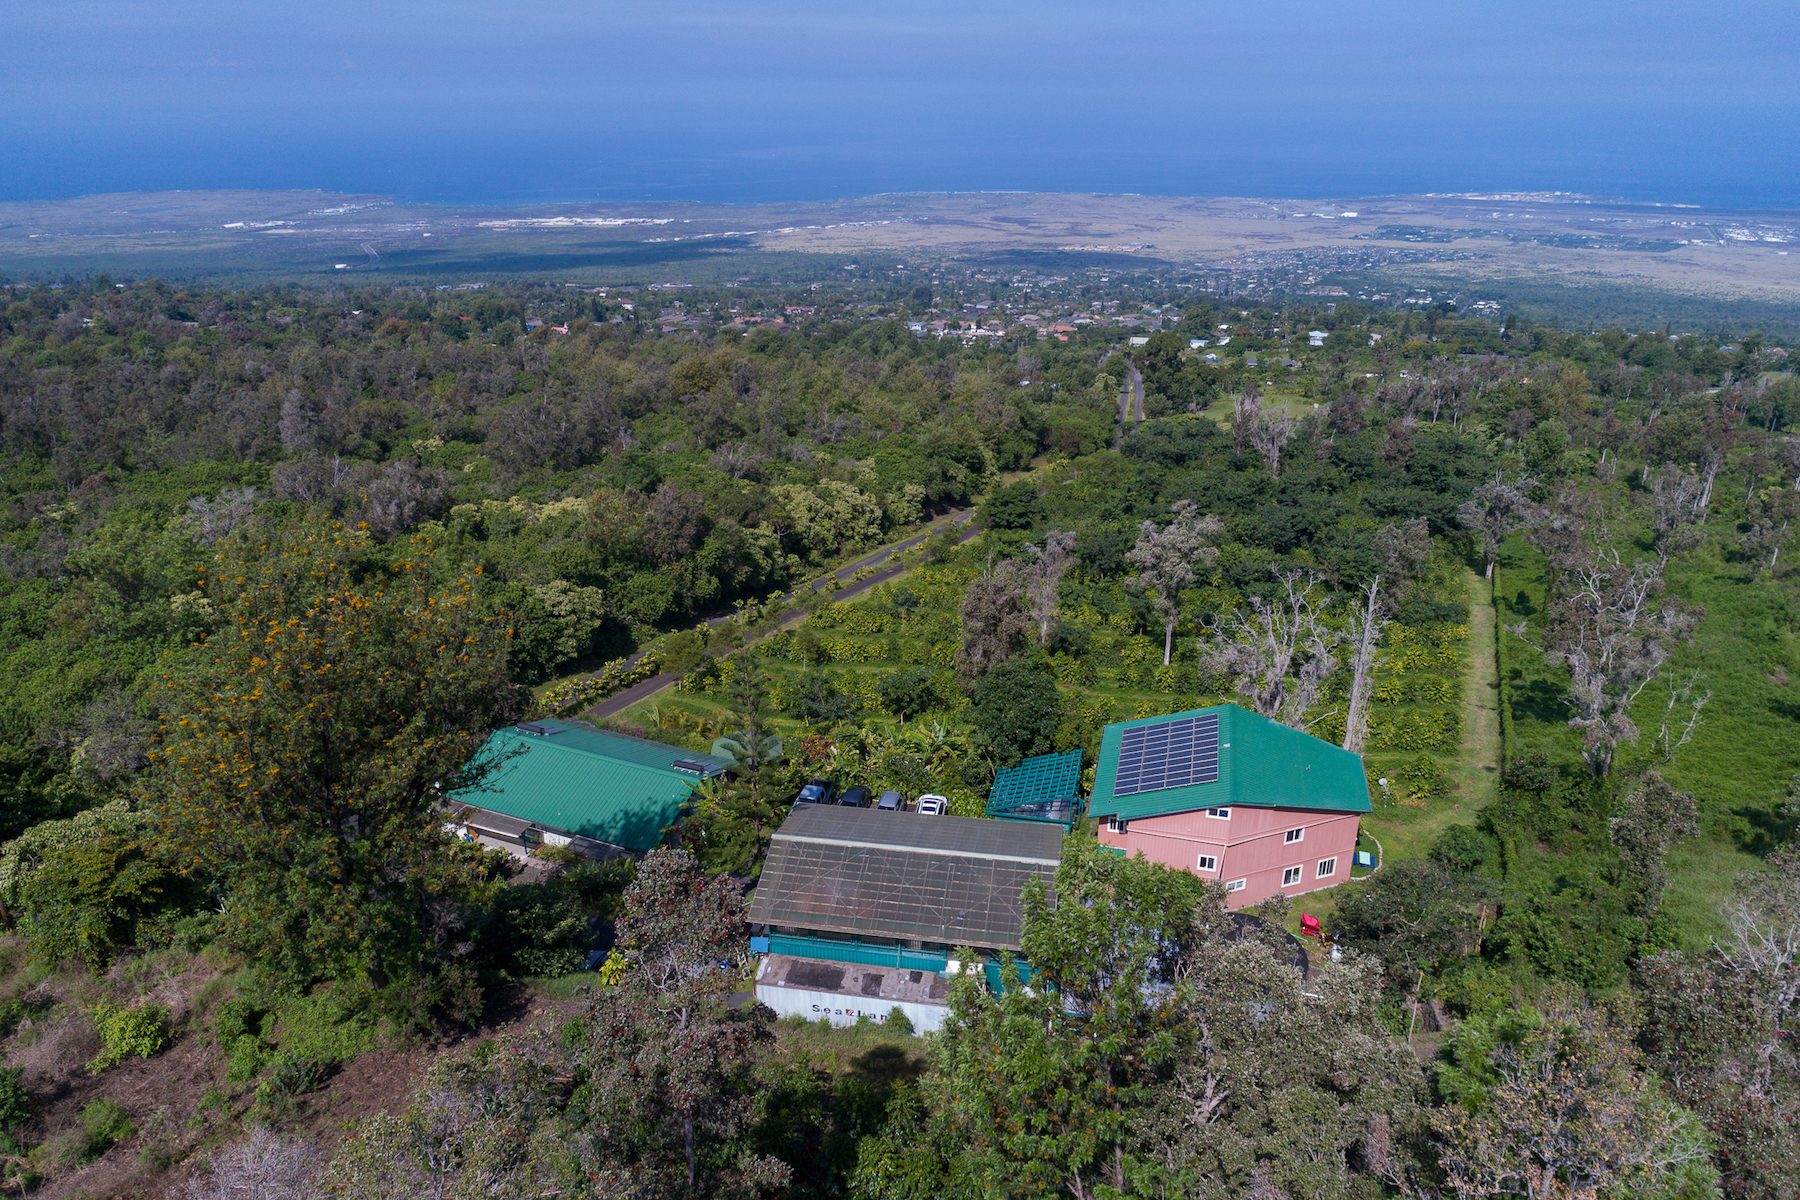 Single Family Home for Sale at Hale Ohiu Homesteads 73-4261 Hawaii Belt Road Kailua-Kona, Hawaii 96740 United States